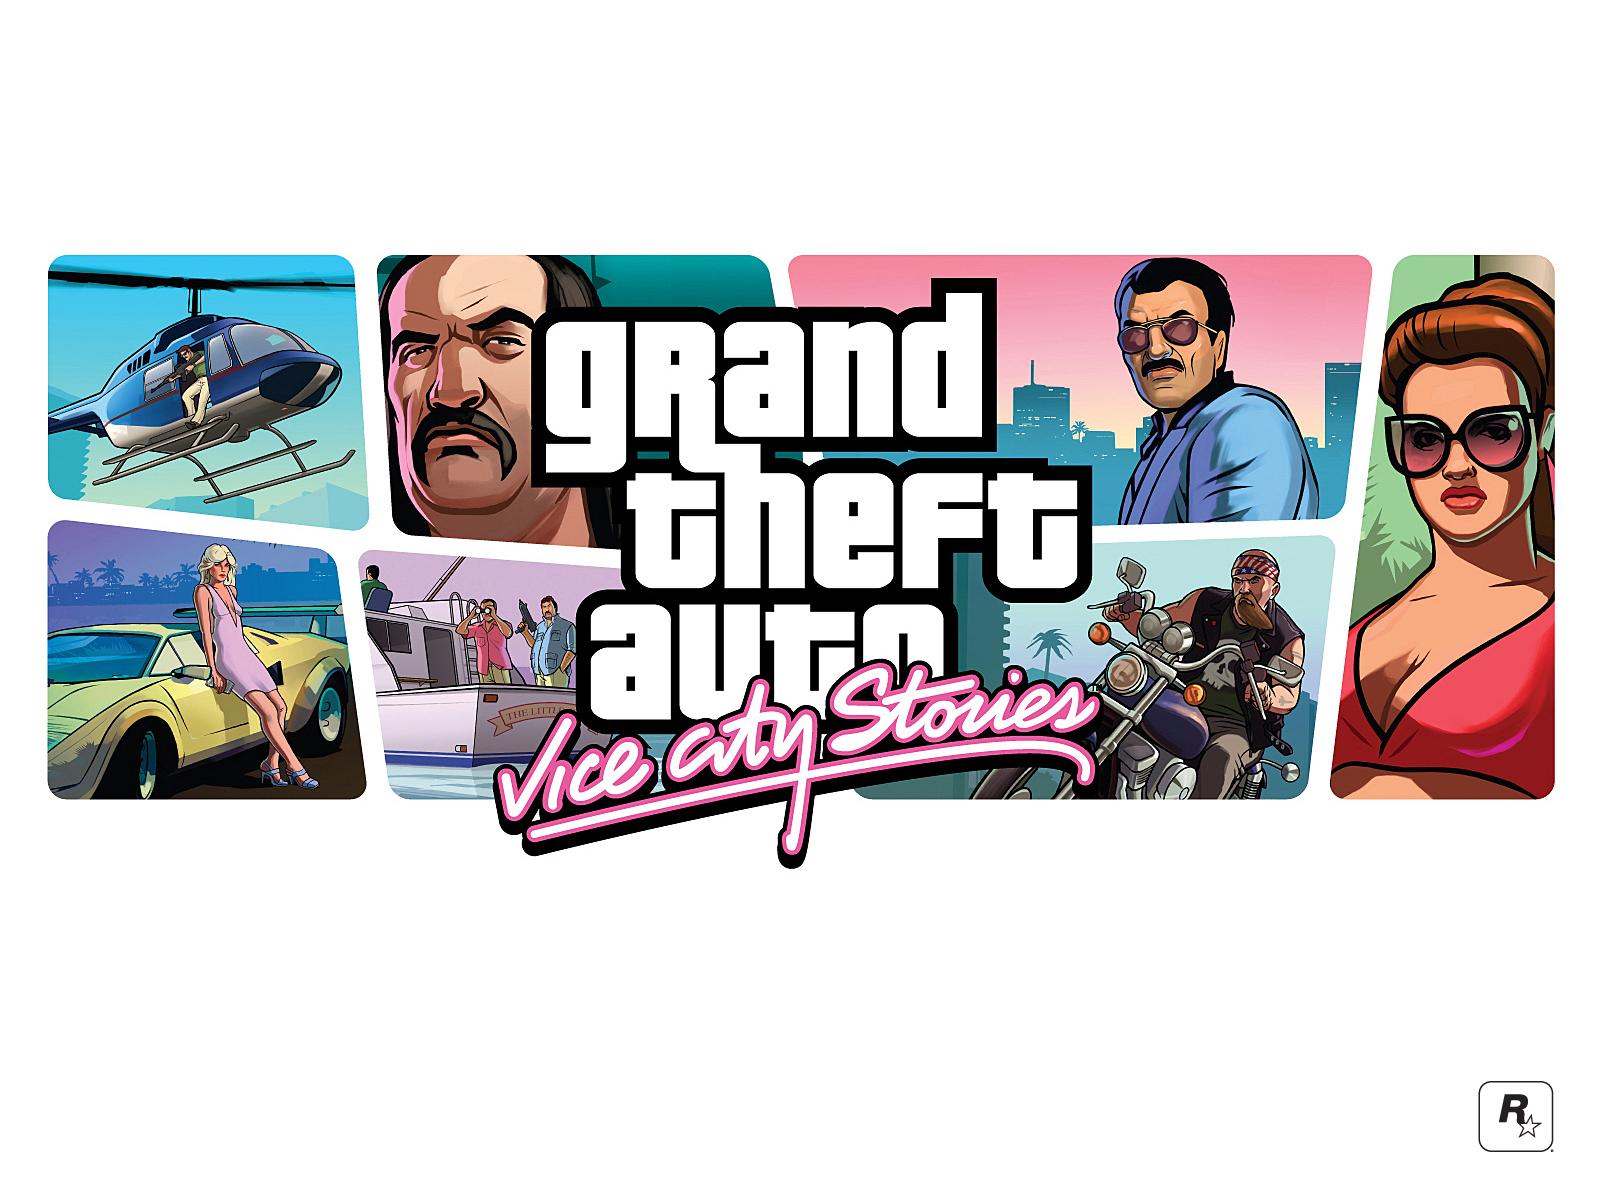 Grand Theft Auto Vice City Stories 2013 Promotional Art Mobygames